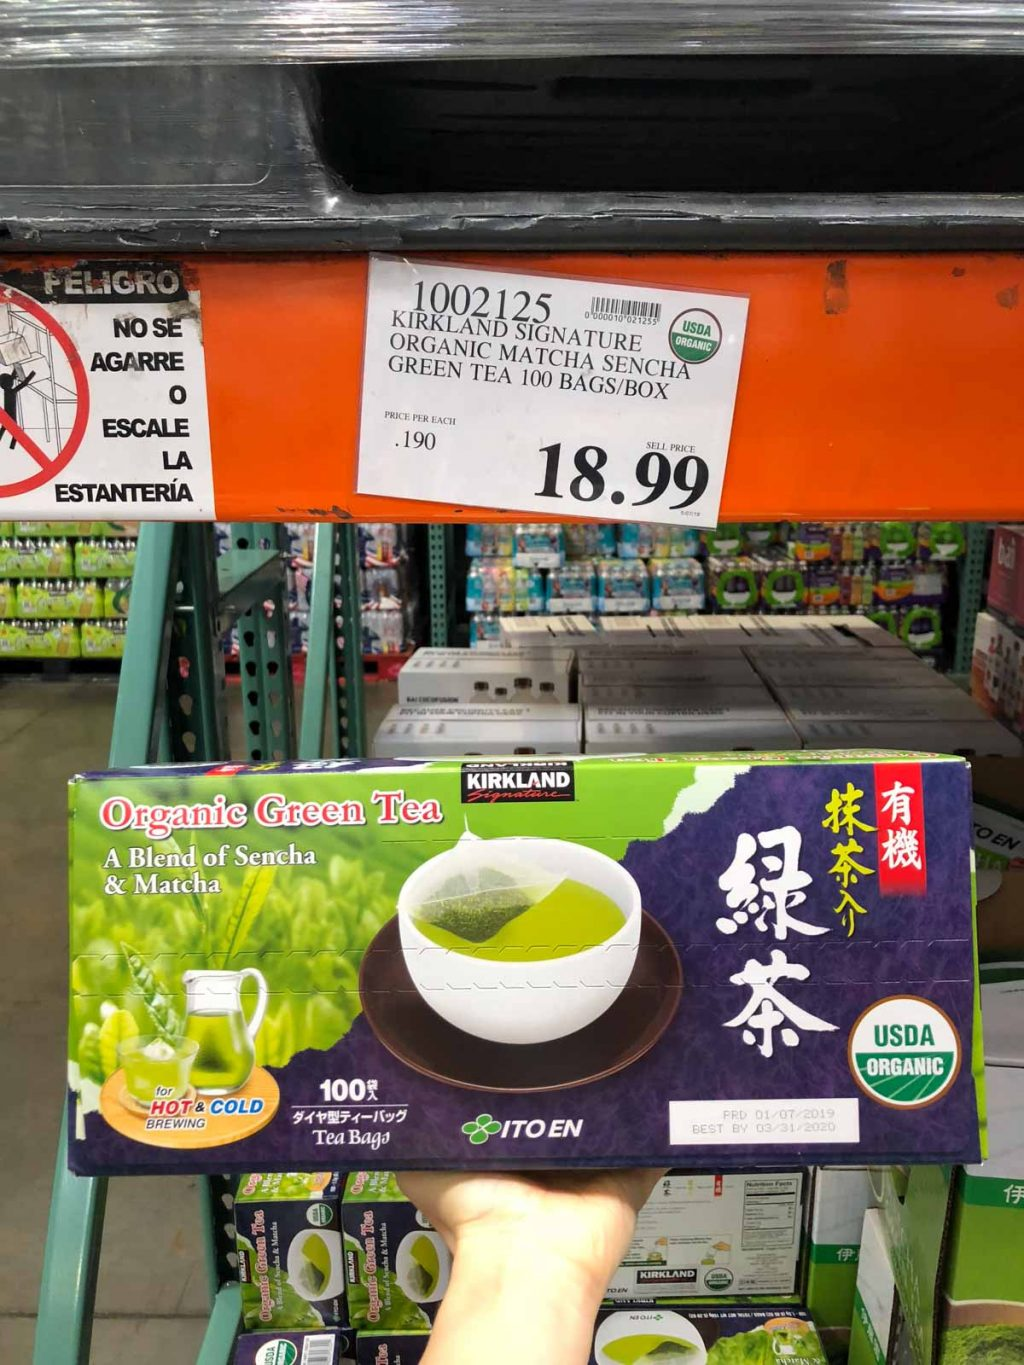 A hand holding a large box of organic green tea for $18.99 at Costco.